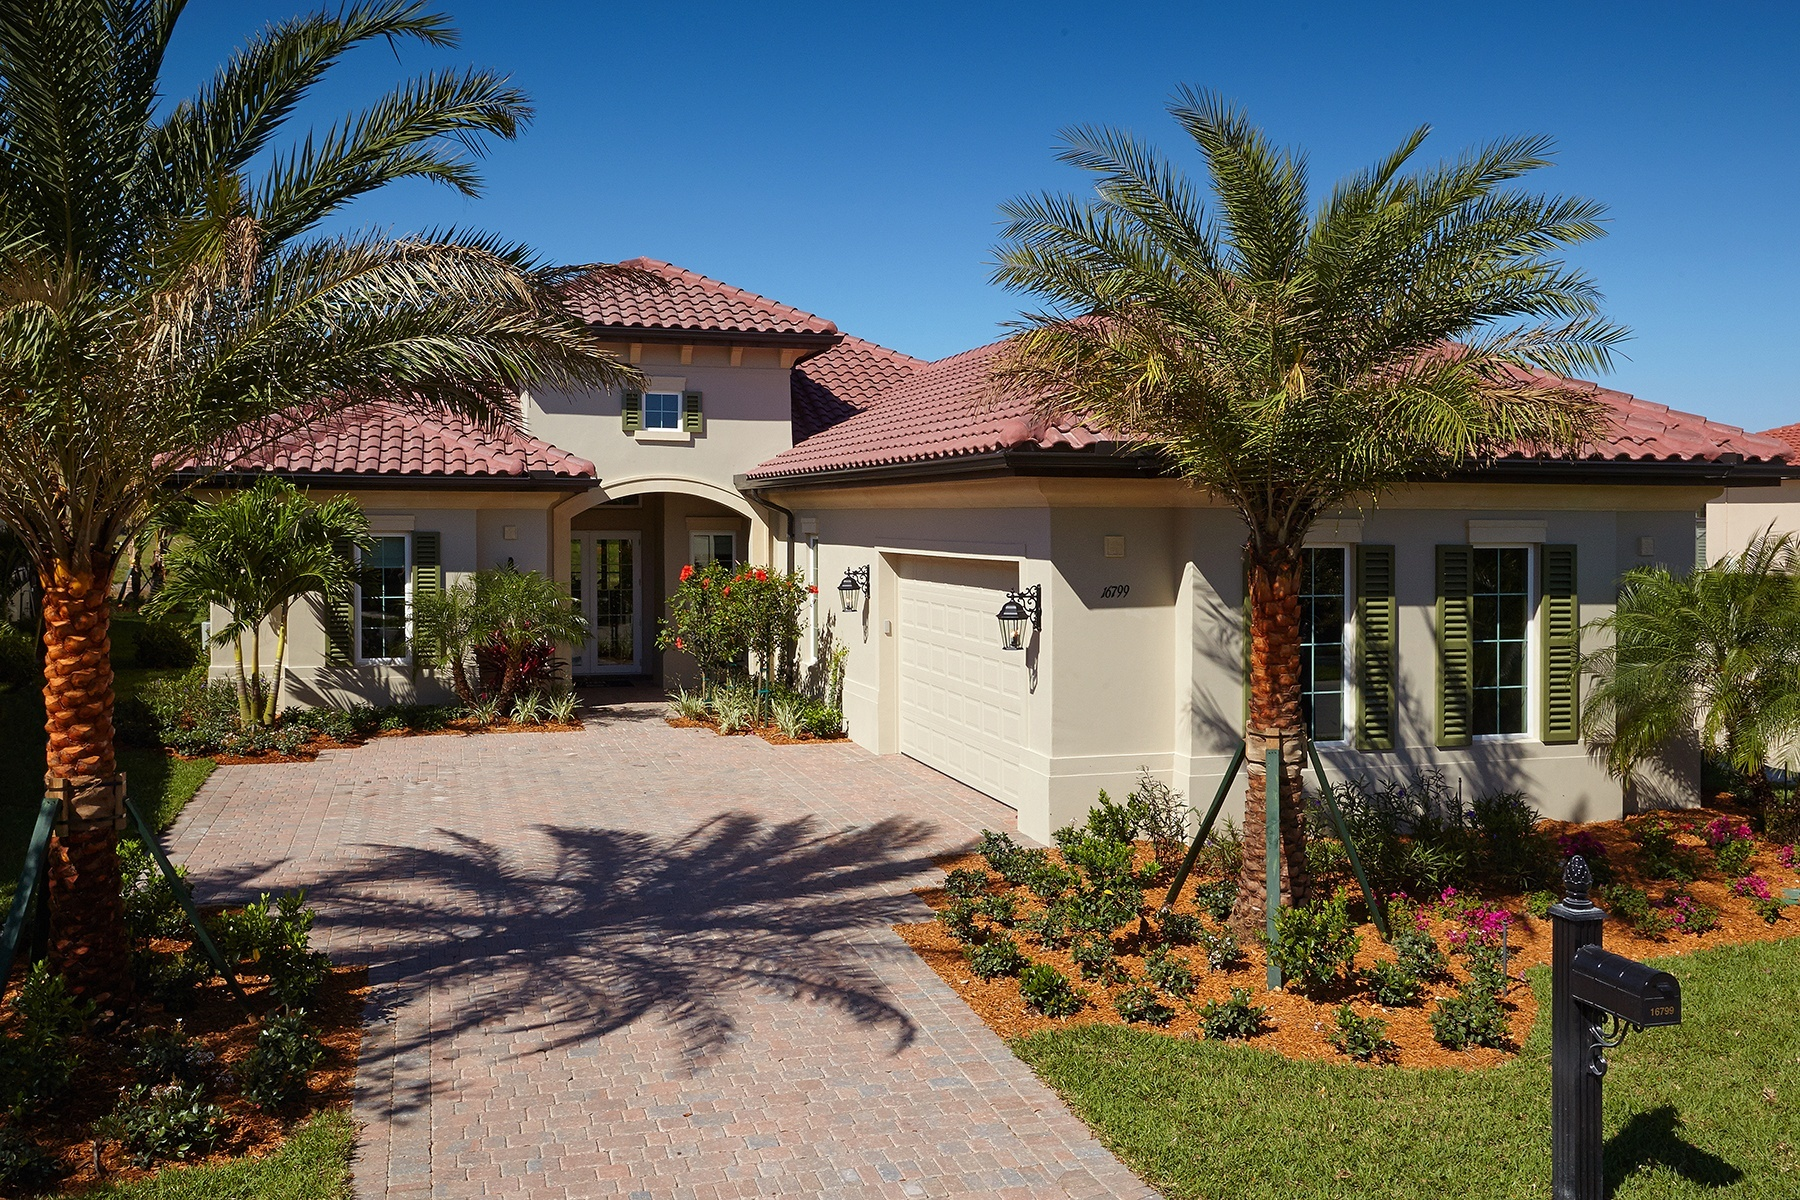 Available Homes for Sale in Sarasota